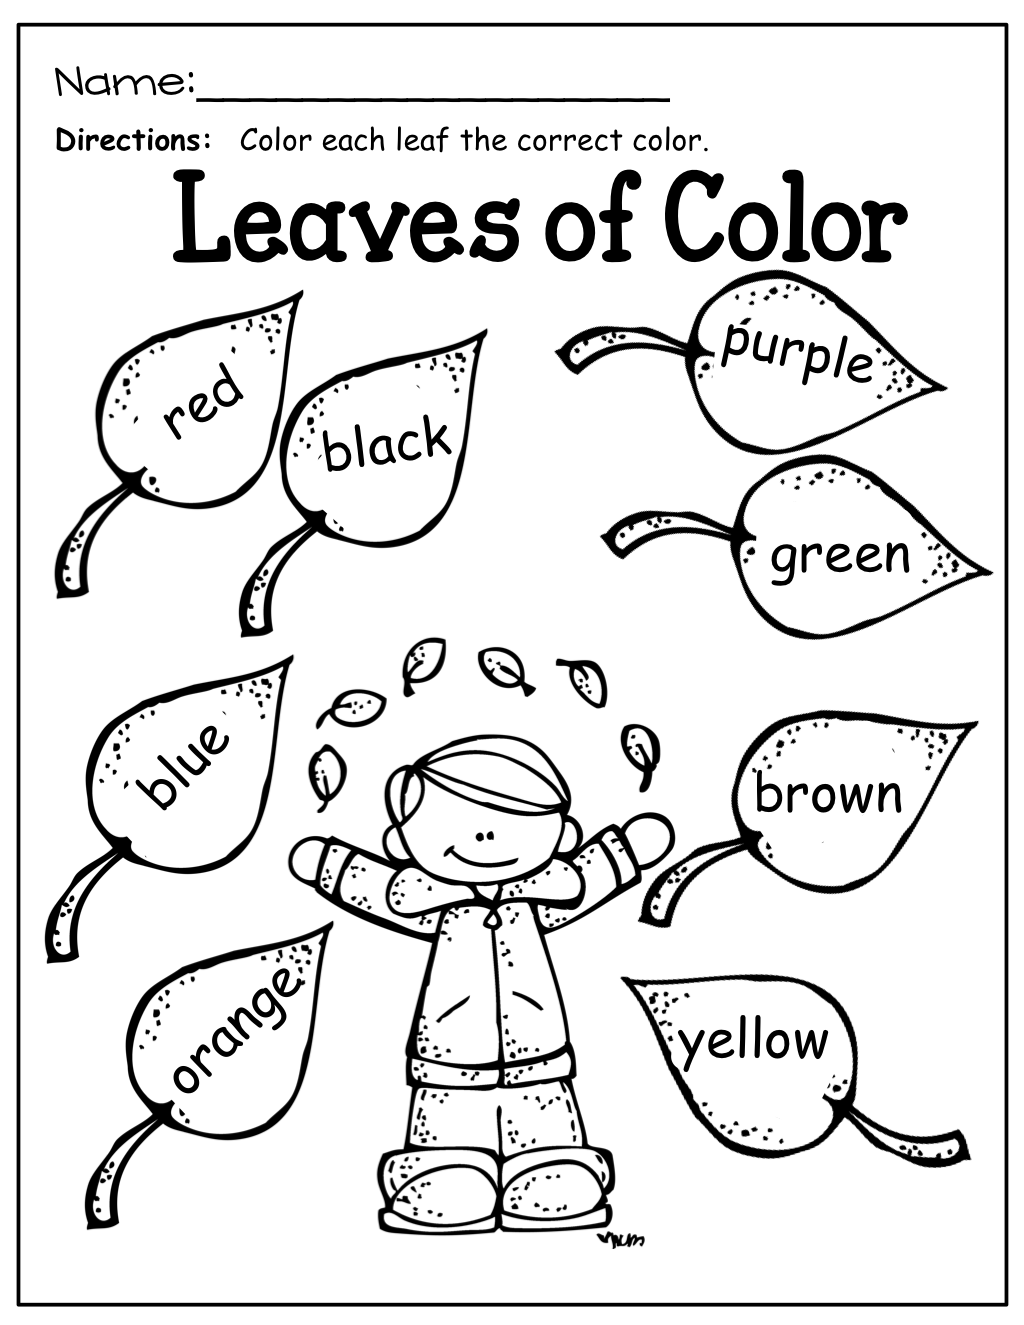 learning colors coloring pages - color by color words kinderland collaborative